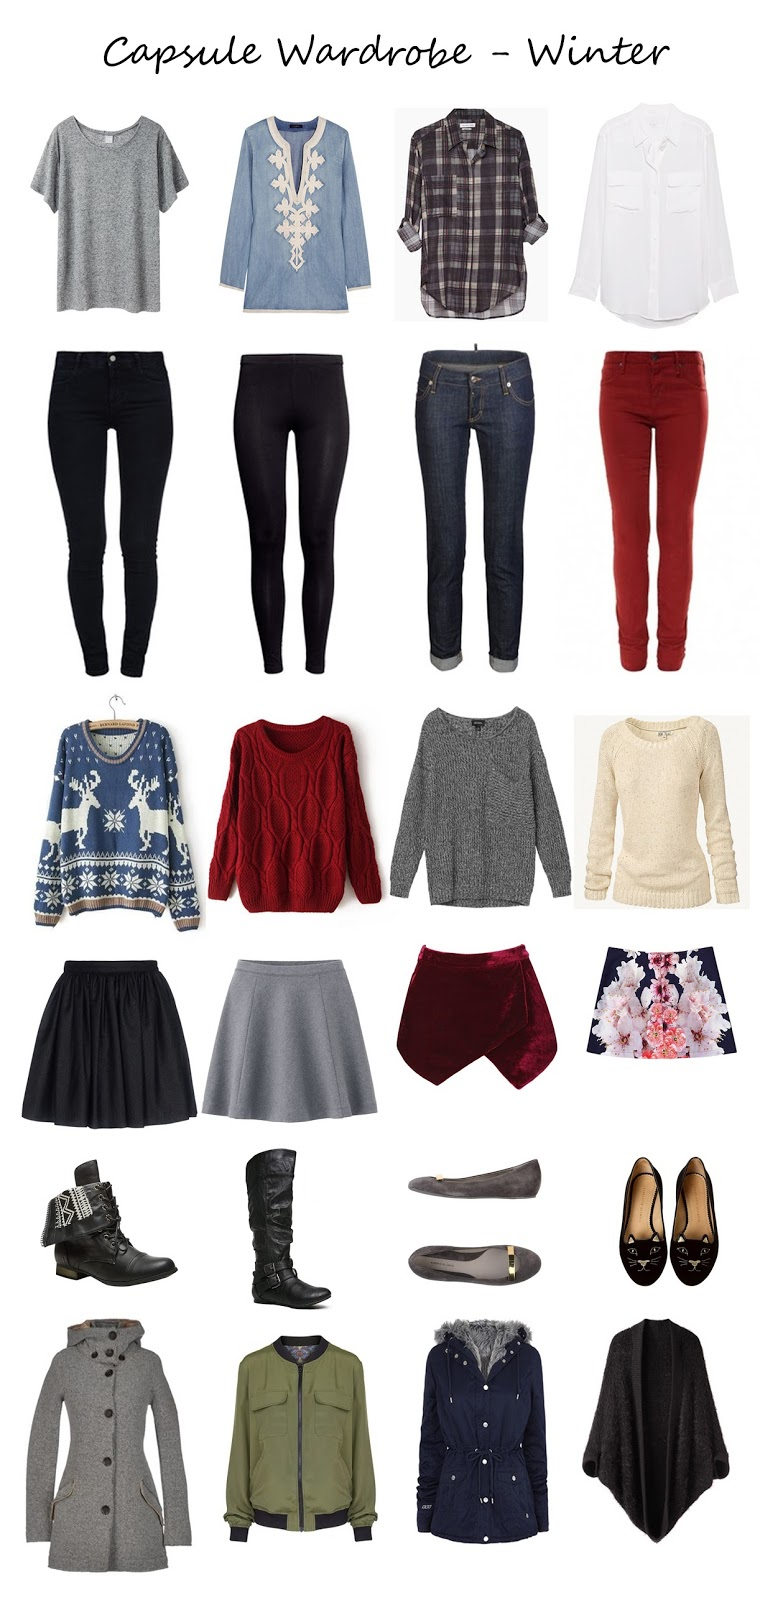 http://www.polyvore.com/capsule_wardrobe_winter/collection?id=3722613